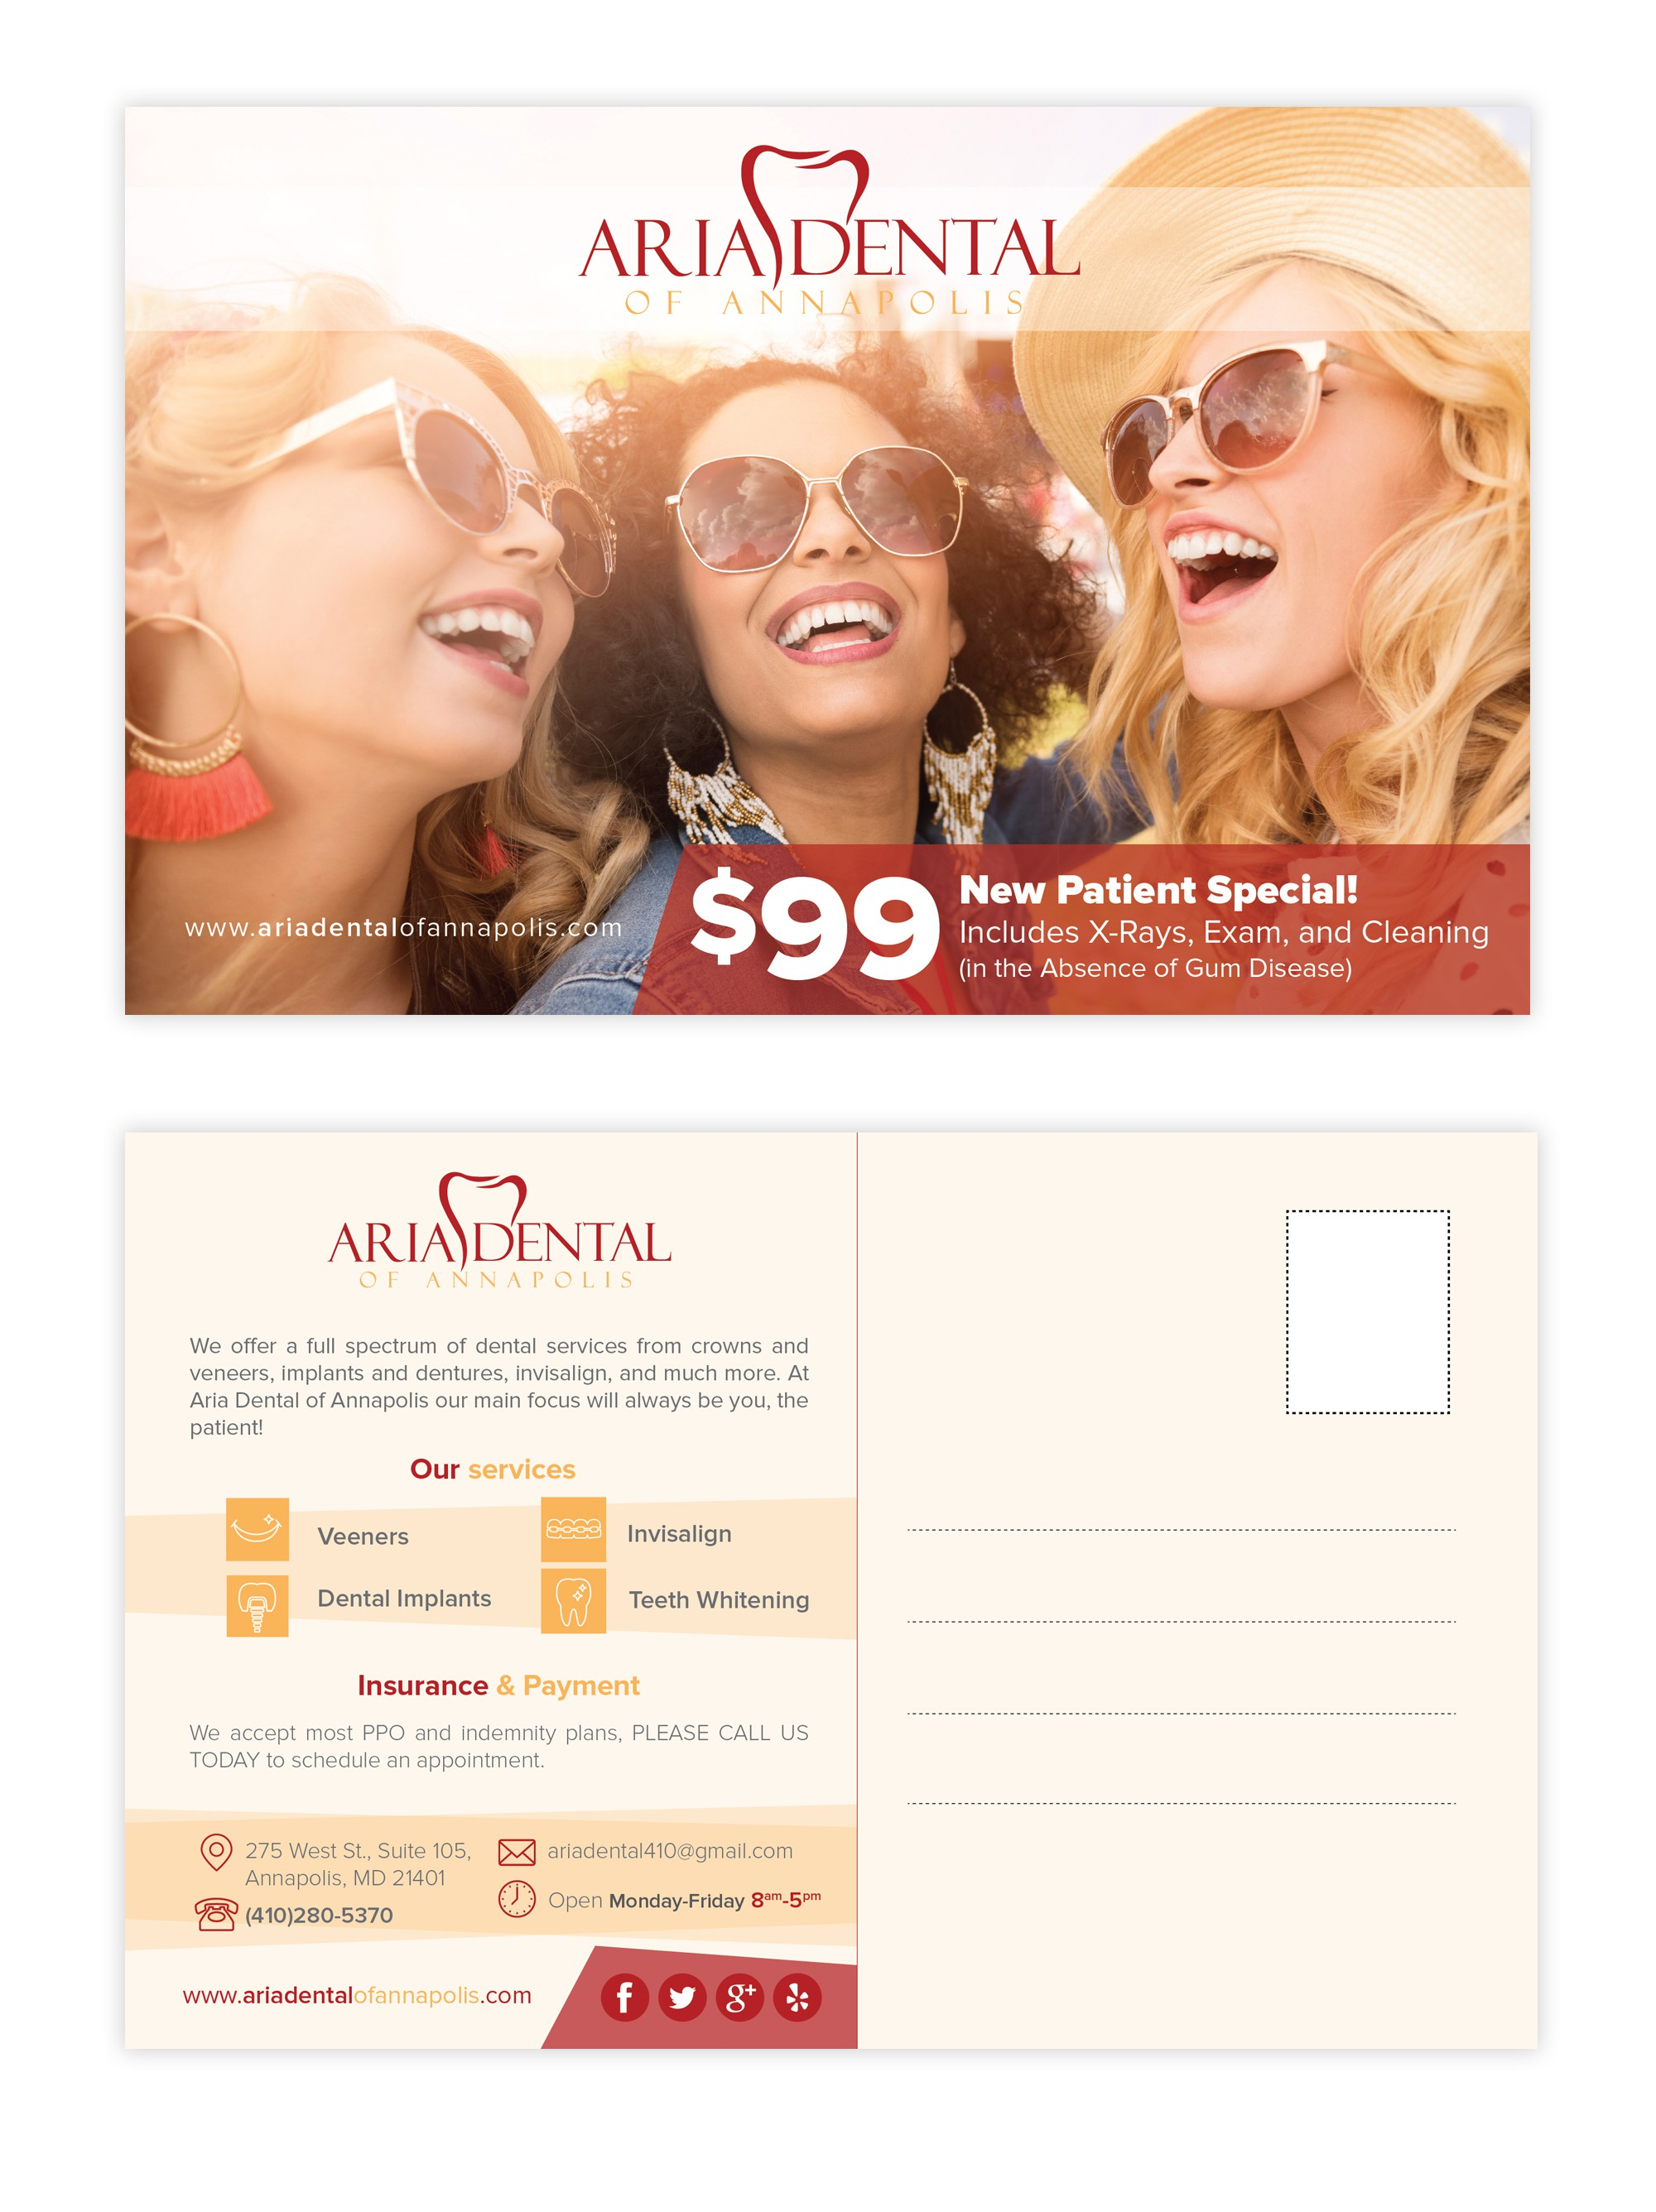 Create a attractive and intriguing postcard that pulls you in for Aria Dental of Annapolis